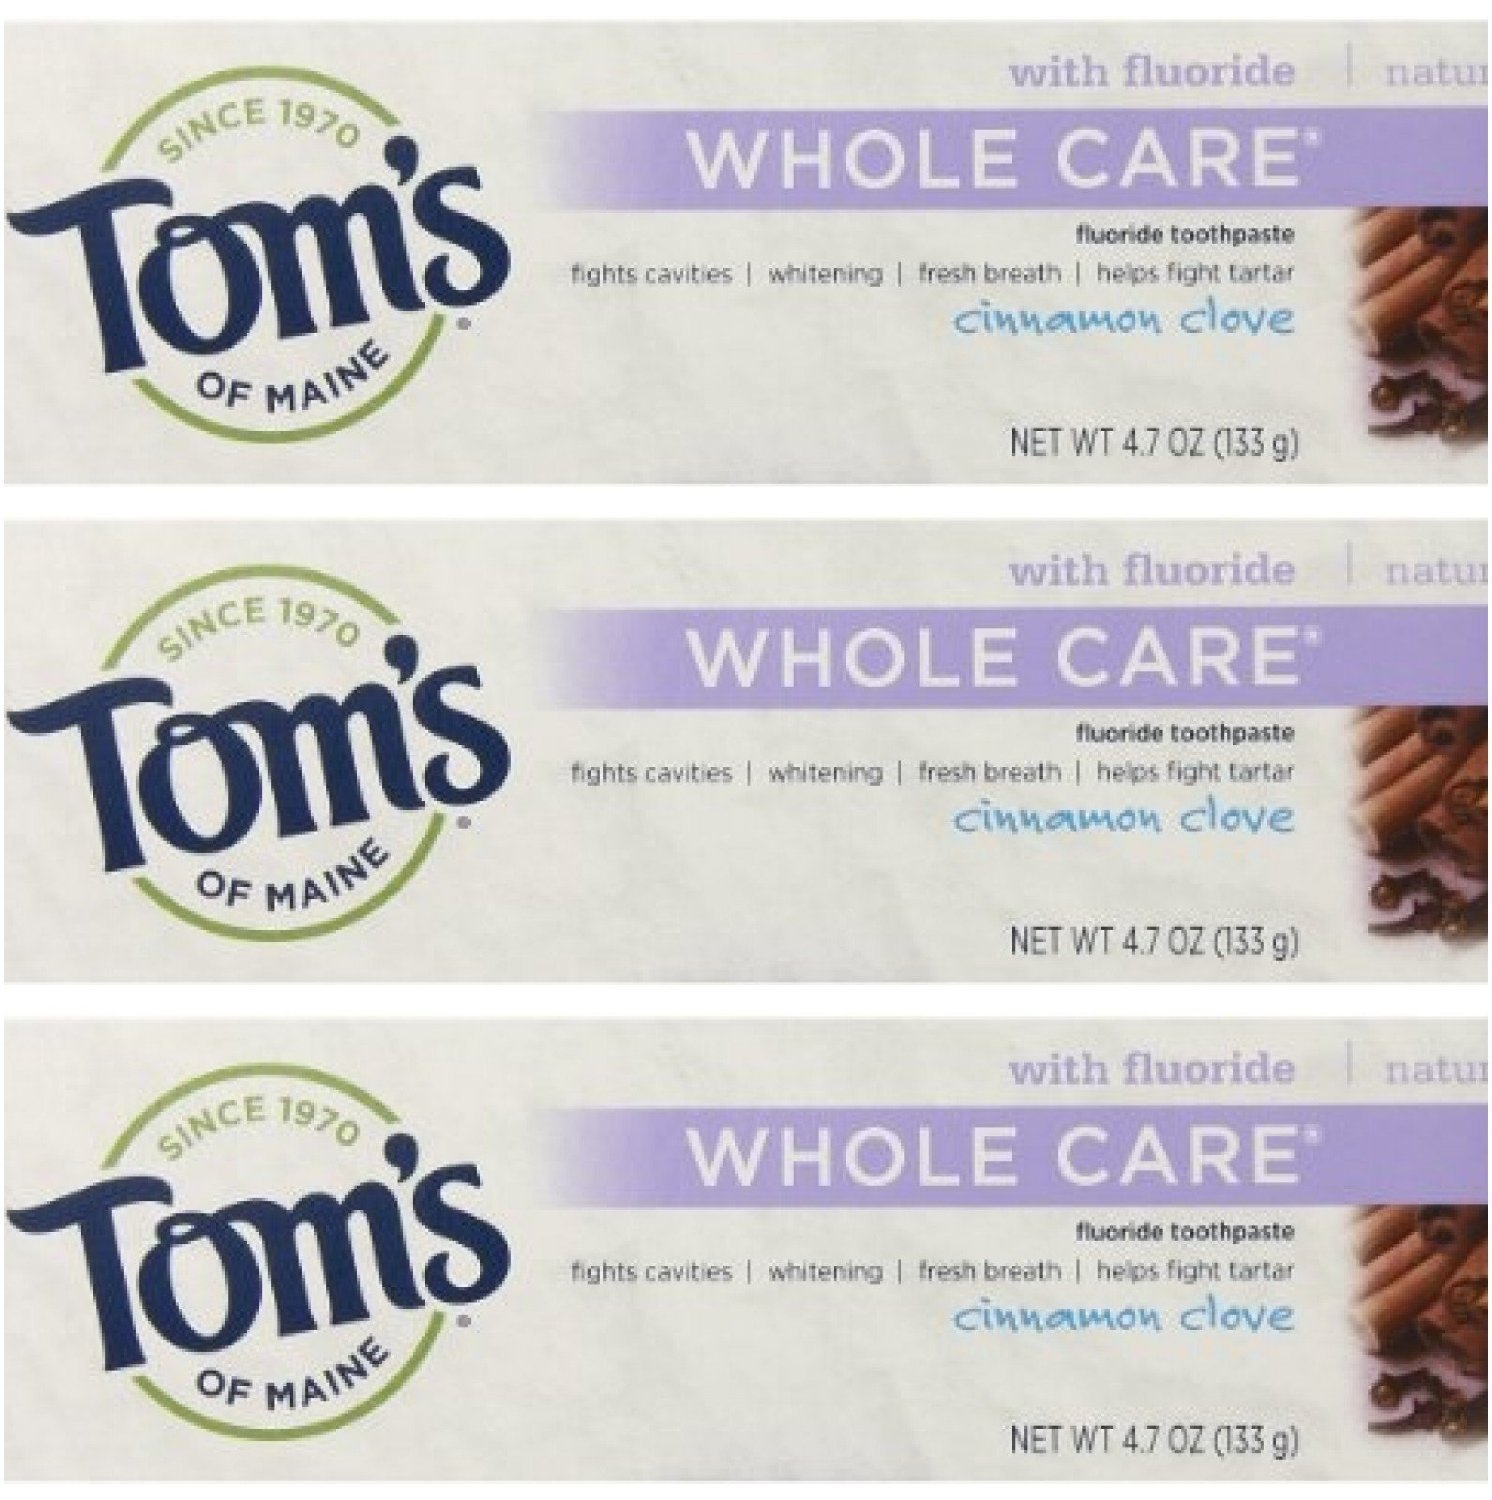 Tom's of Maine Natural Whole Care Toothpaste with Fluoride, Cinnamon Clove, 3 Count, Natural. Anticavity & tartar control plus whitening By Toms of Maine From USA